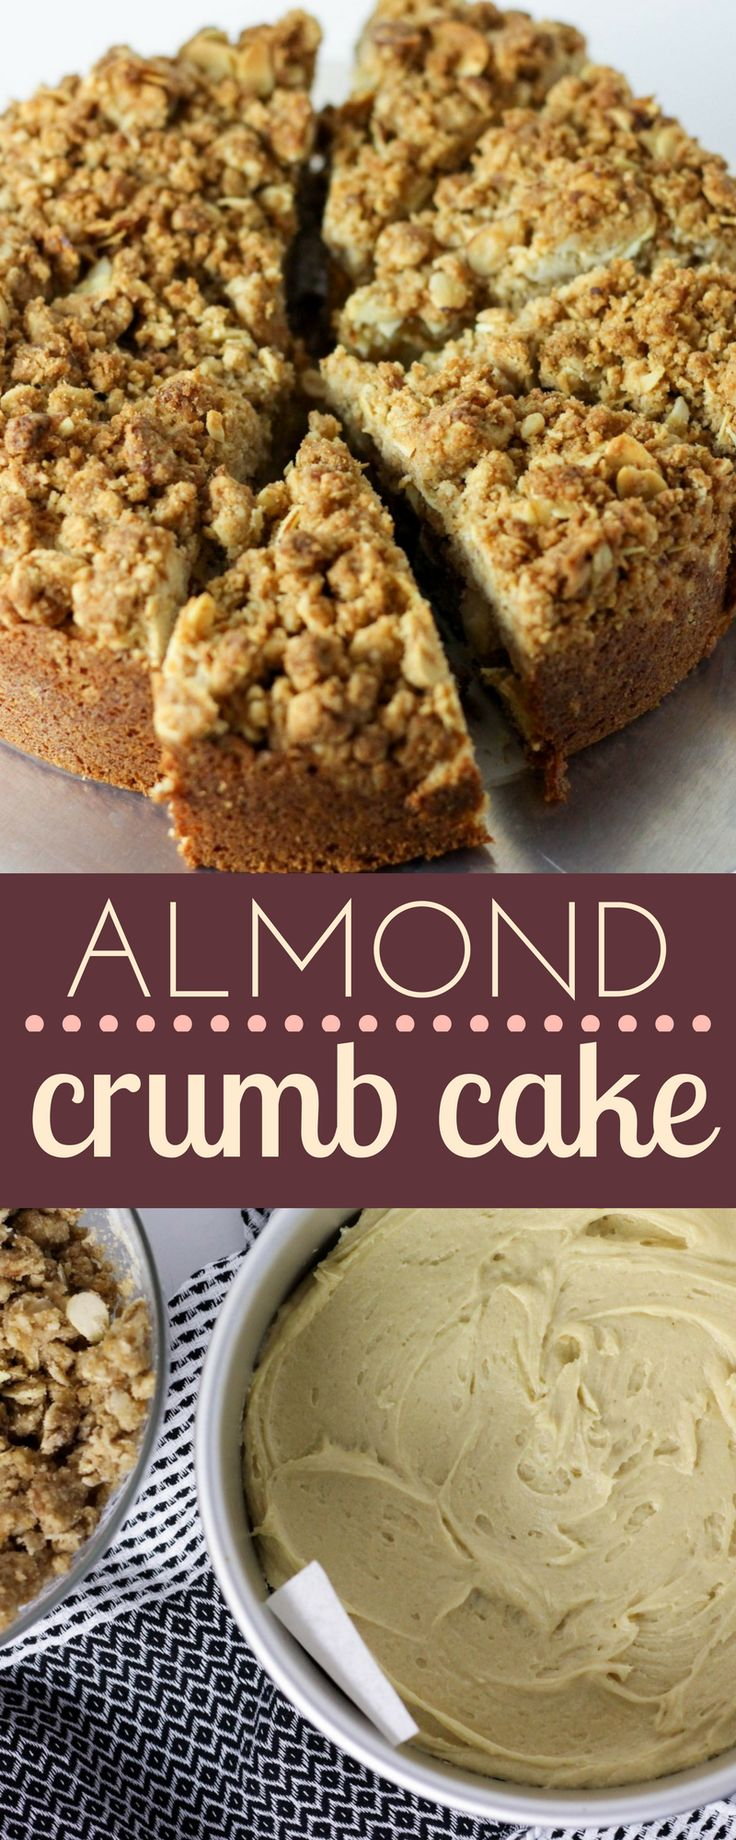 #Almond Crumb Coffee Cake that will go perfectly with your morning cup! #breakfast #cake